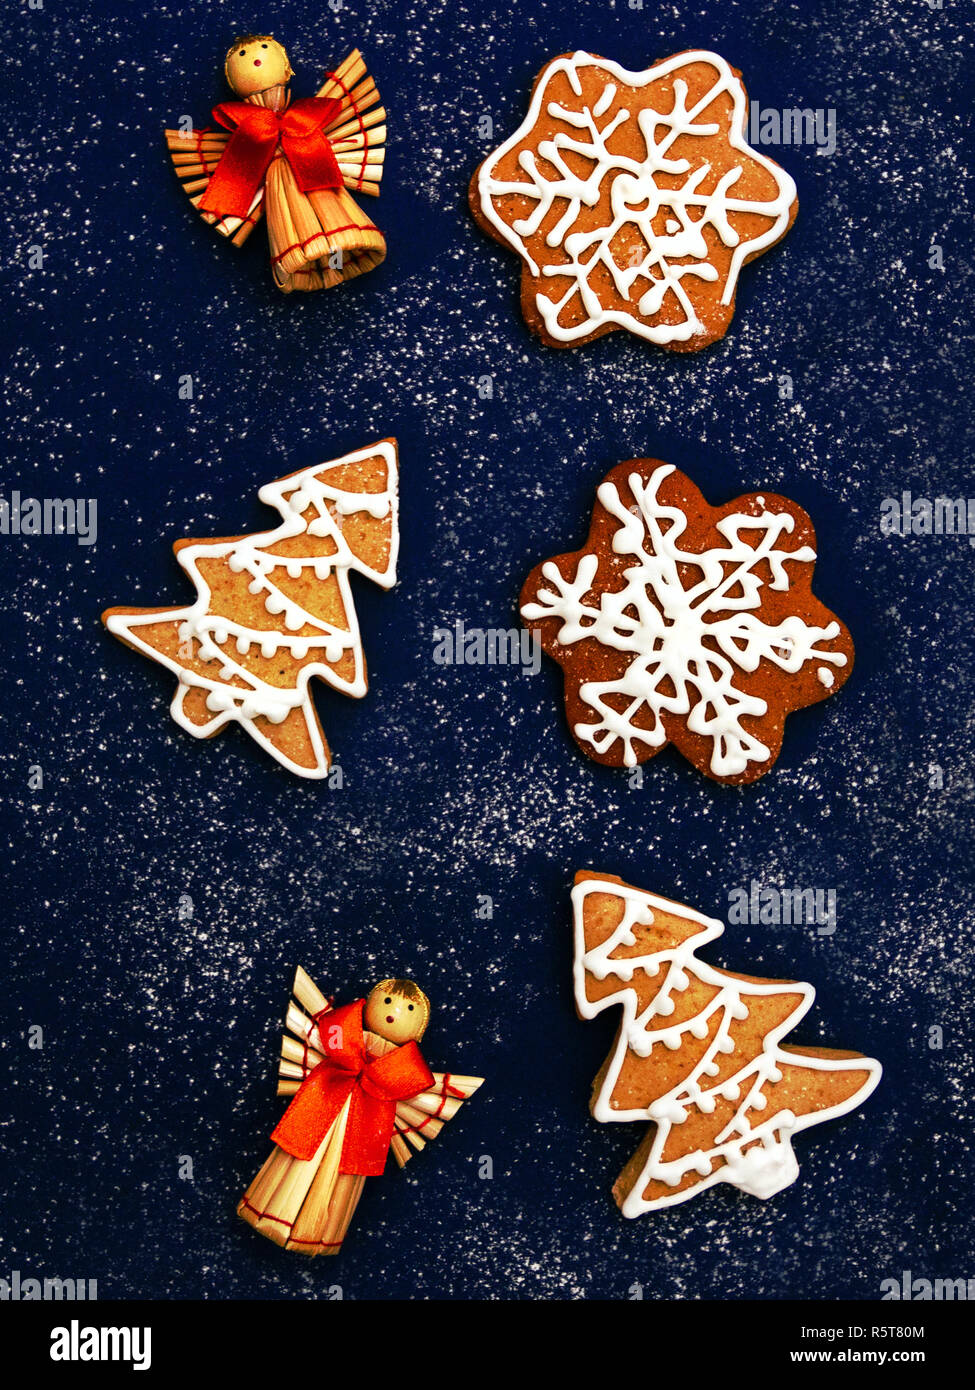 Christmas cookies Top view photo Classic gingerbreads in shapes of house, spruces and snowflakes with icing are lying on dark blue desk - Stock Image